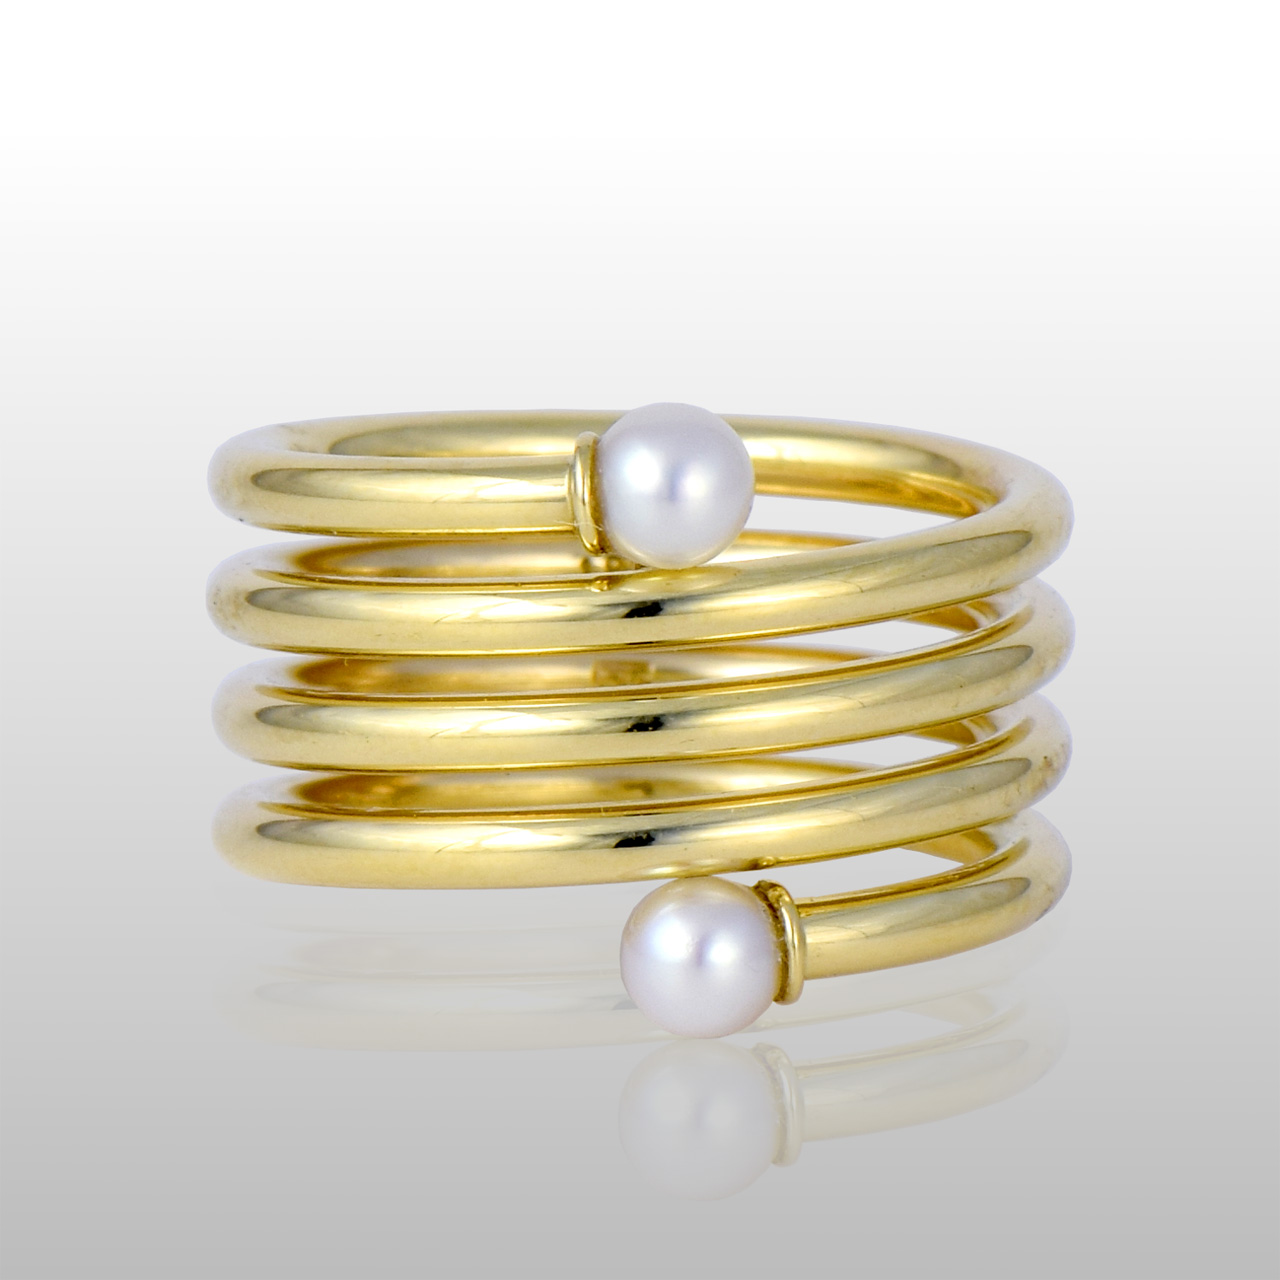 18k yellow gold spirla ring, 5 bands, with a round white pearl on each end